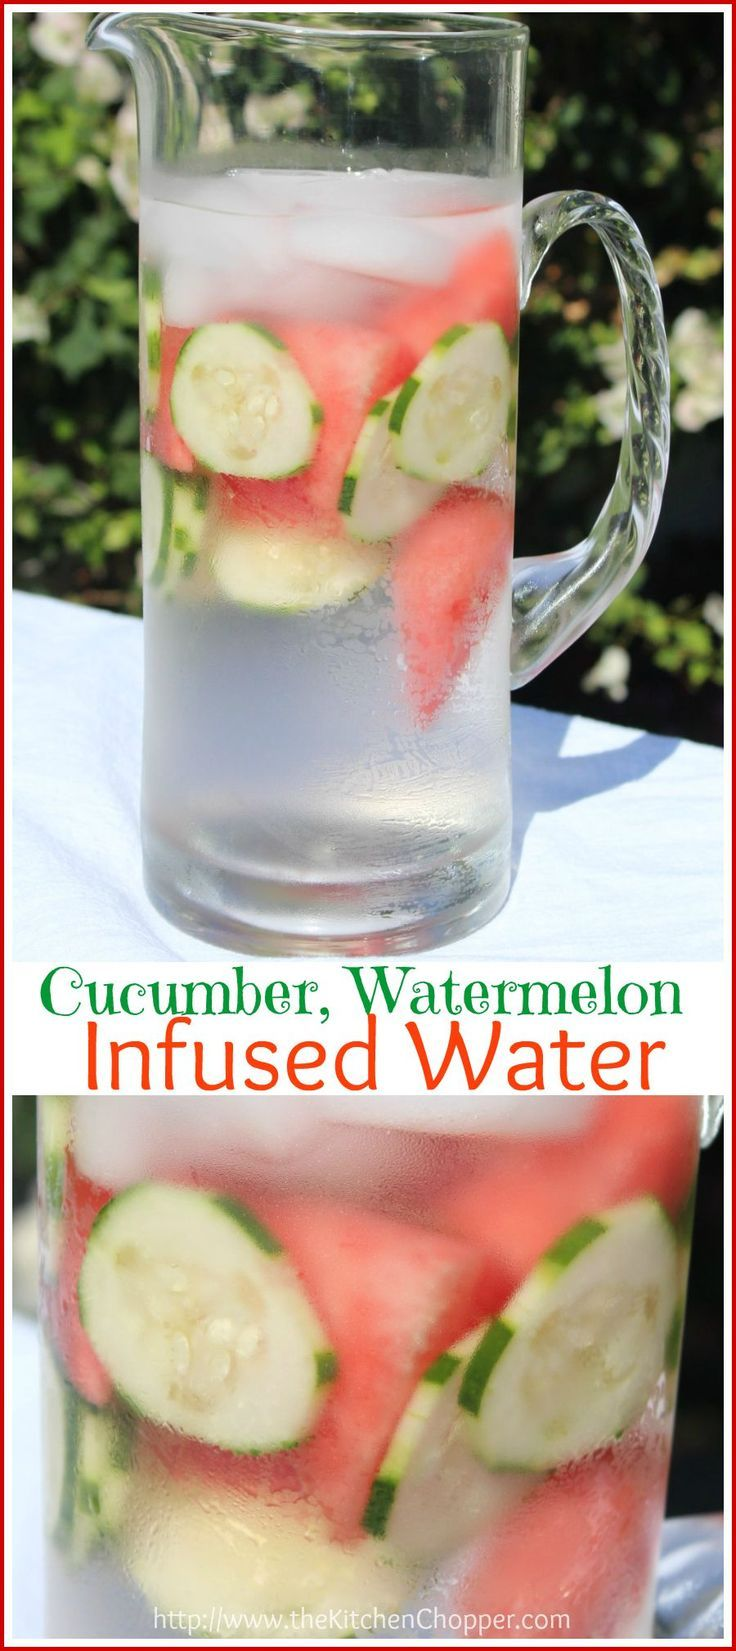 See more here ► https://www.youtube.com/watch?v=-pwmXYq0RQk Tags: the best ways to lose weight, best way to lose weight in a month, is running the best way to lose weight - Cucumber, Watermelon Infused Water The Kitchen Chopper #exercise #diet #workout #fitness #health